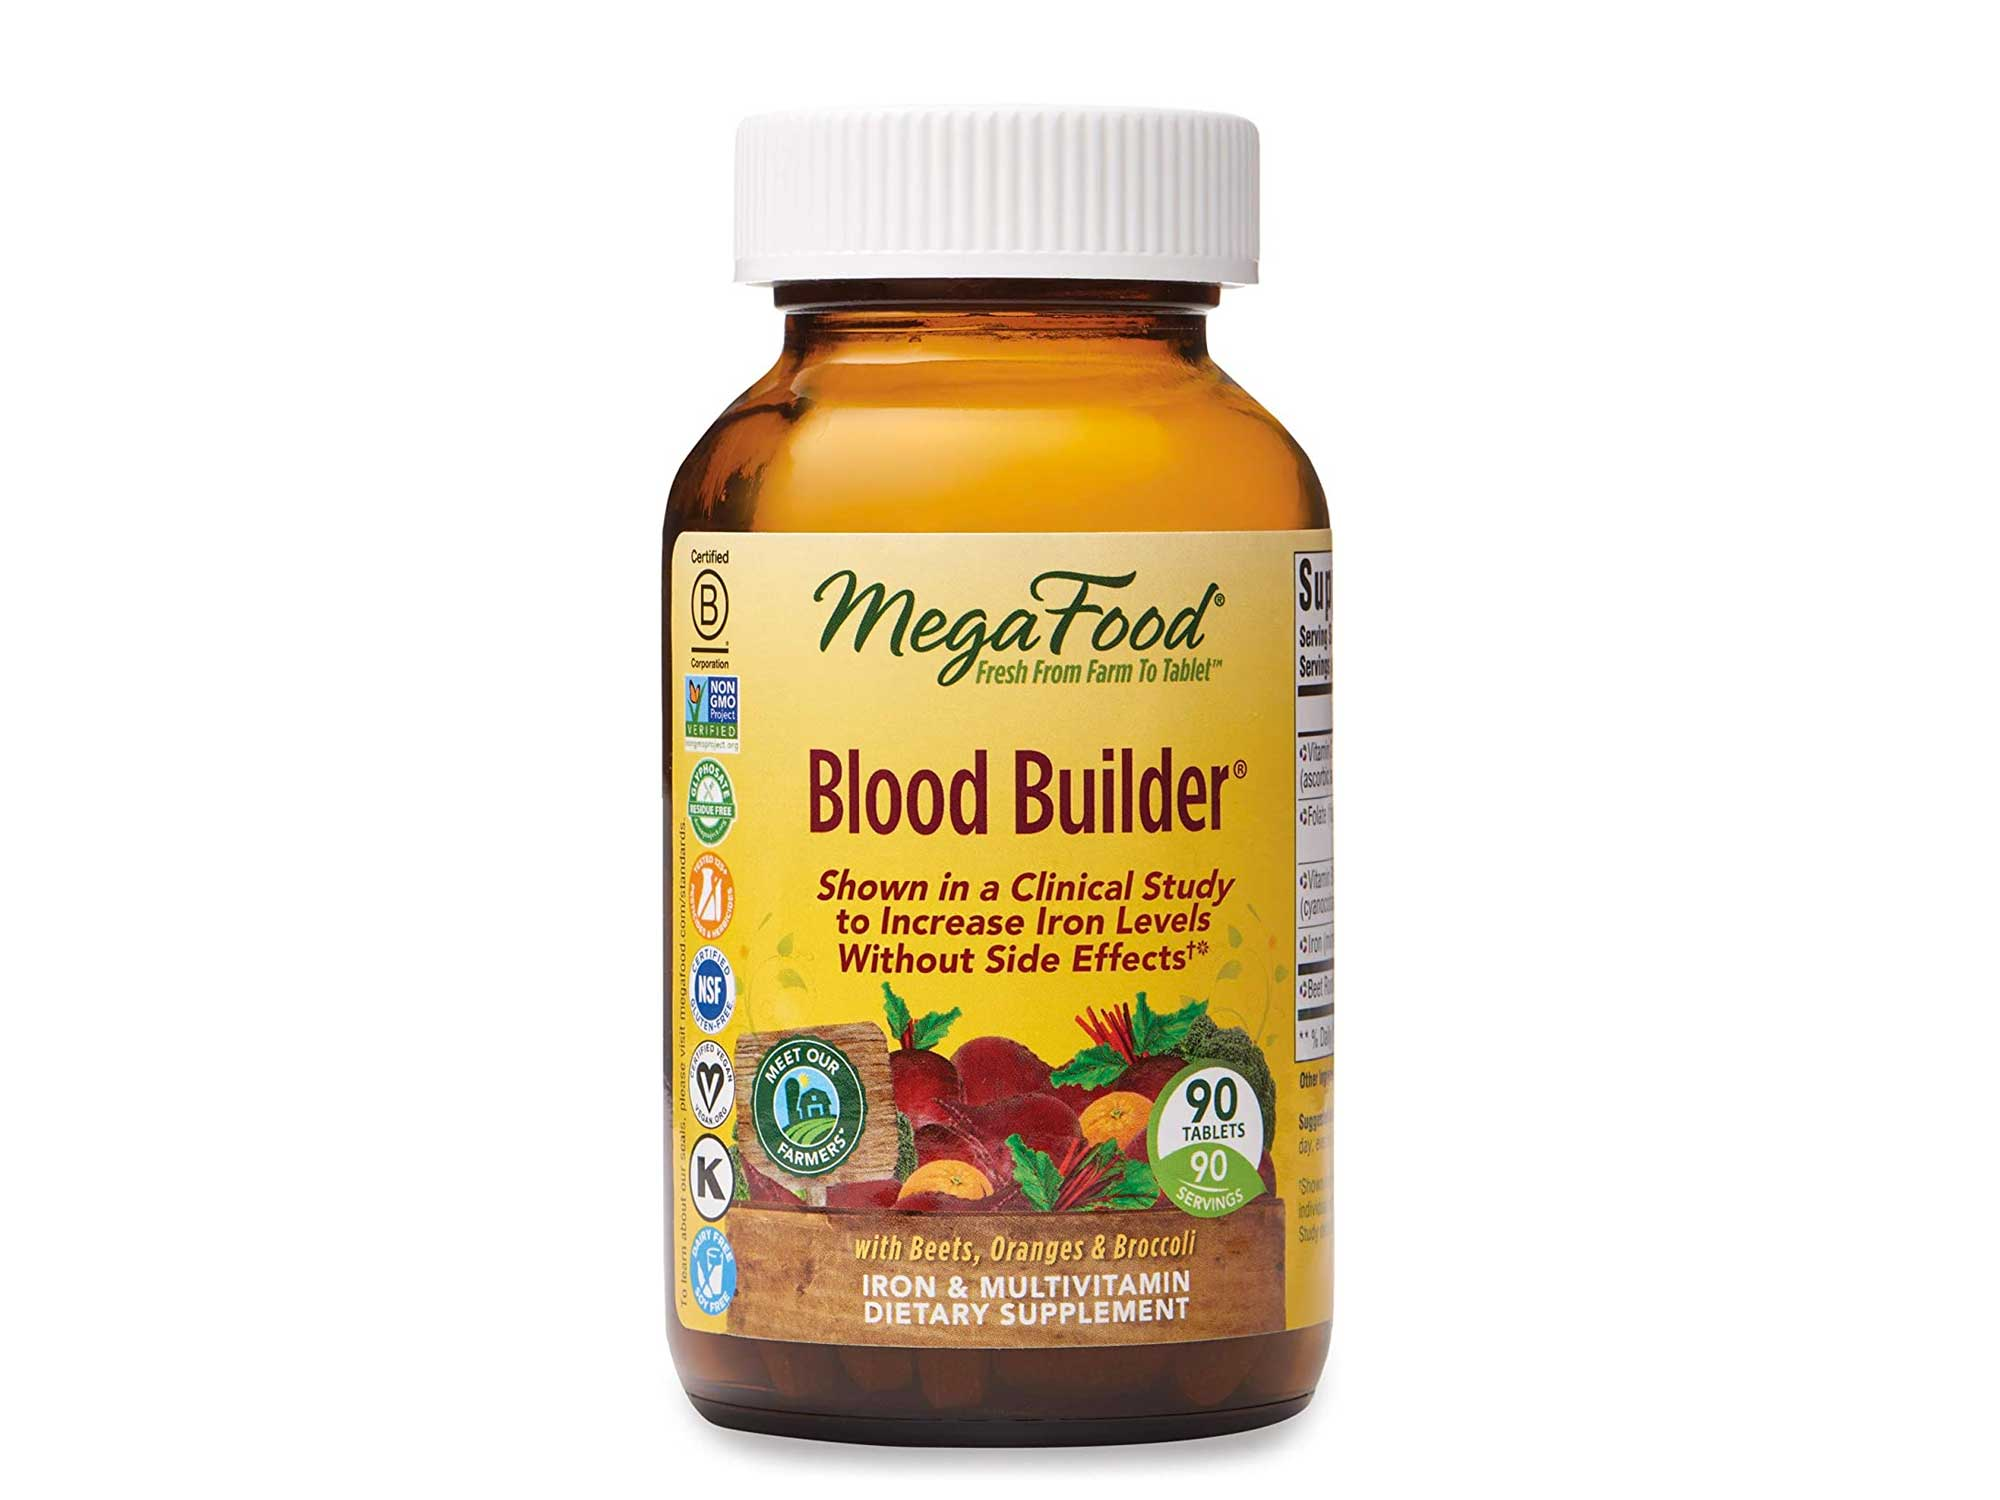 MegaFood, Blood Builder, Daily Iron Supplement and Multivitamin